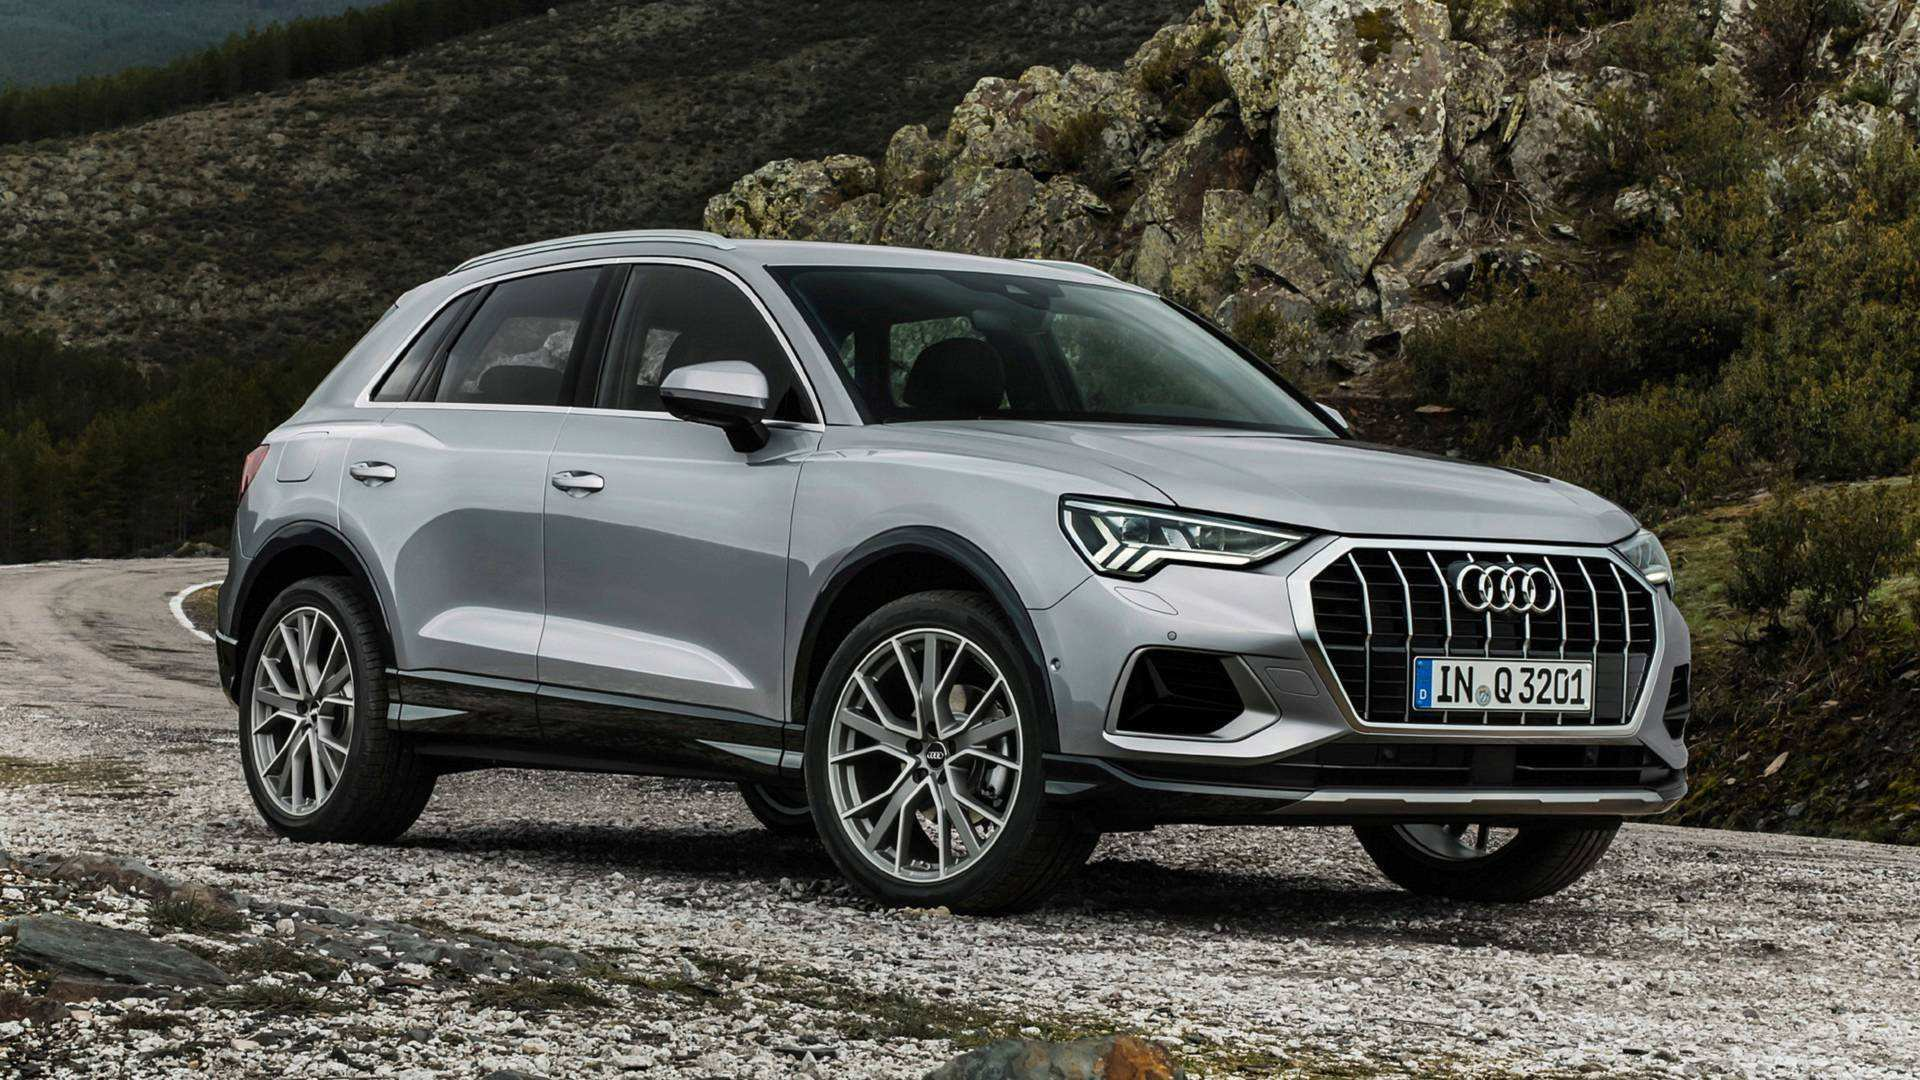 94 Gallery of New Audi Q3 2019 Hybrid Price Interior by New Audi Q3 2019 Hybrid Price